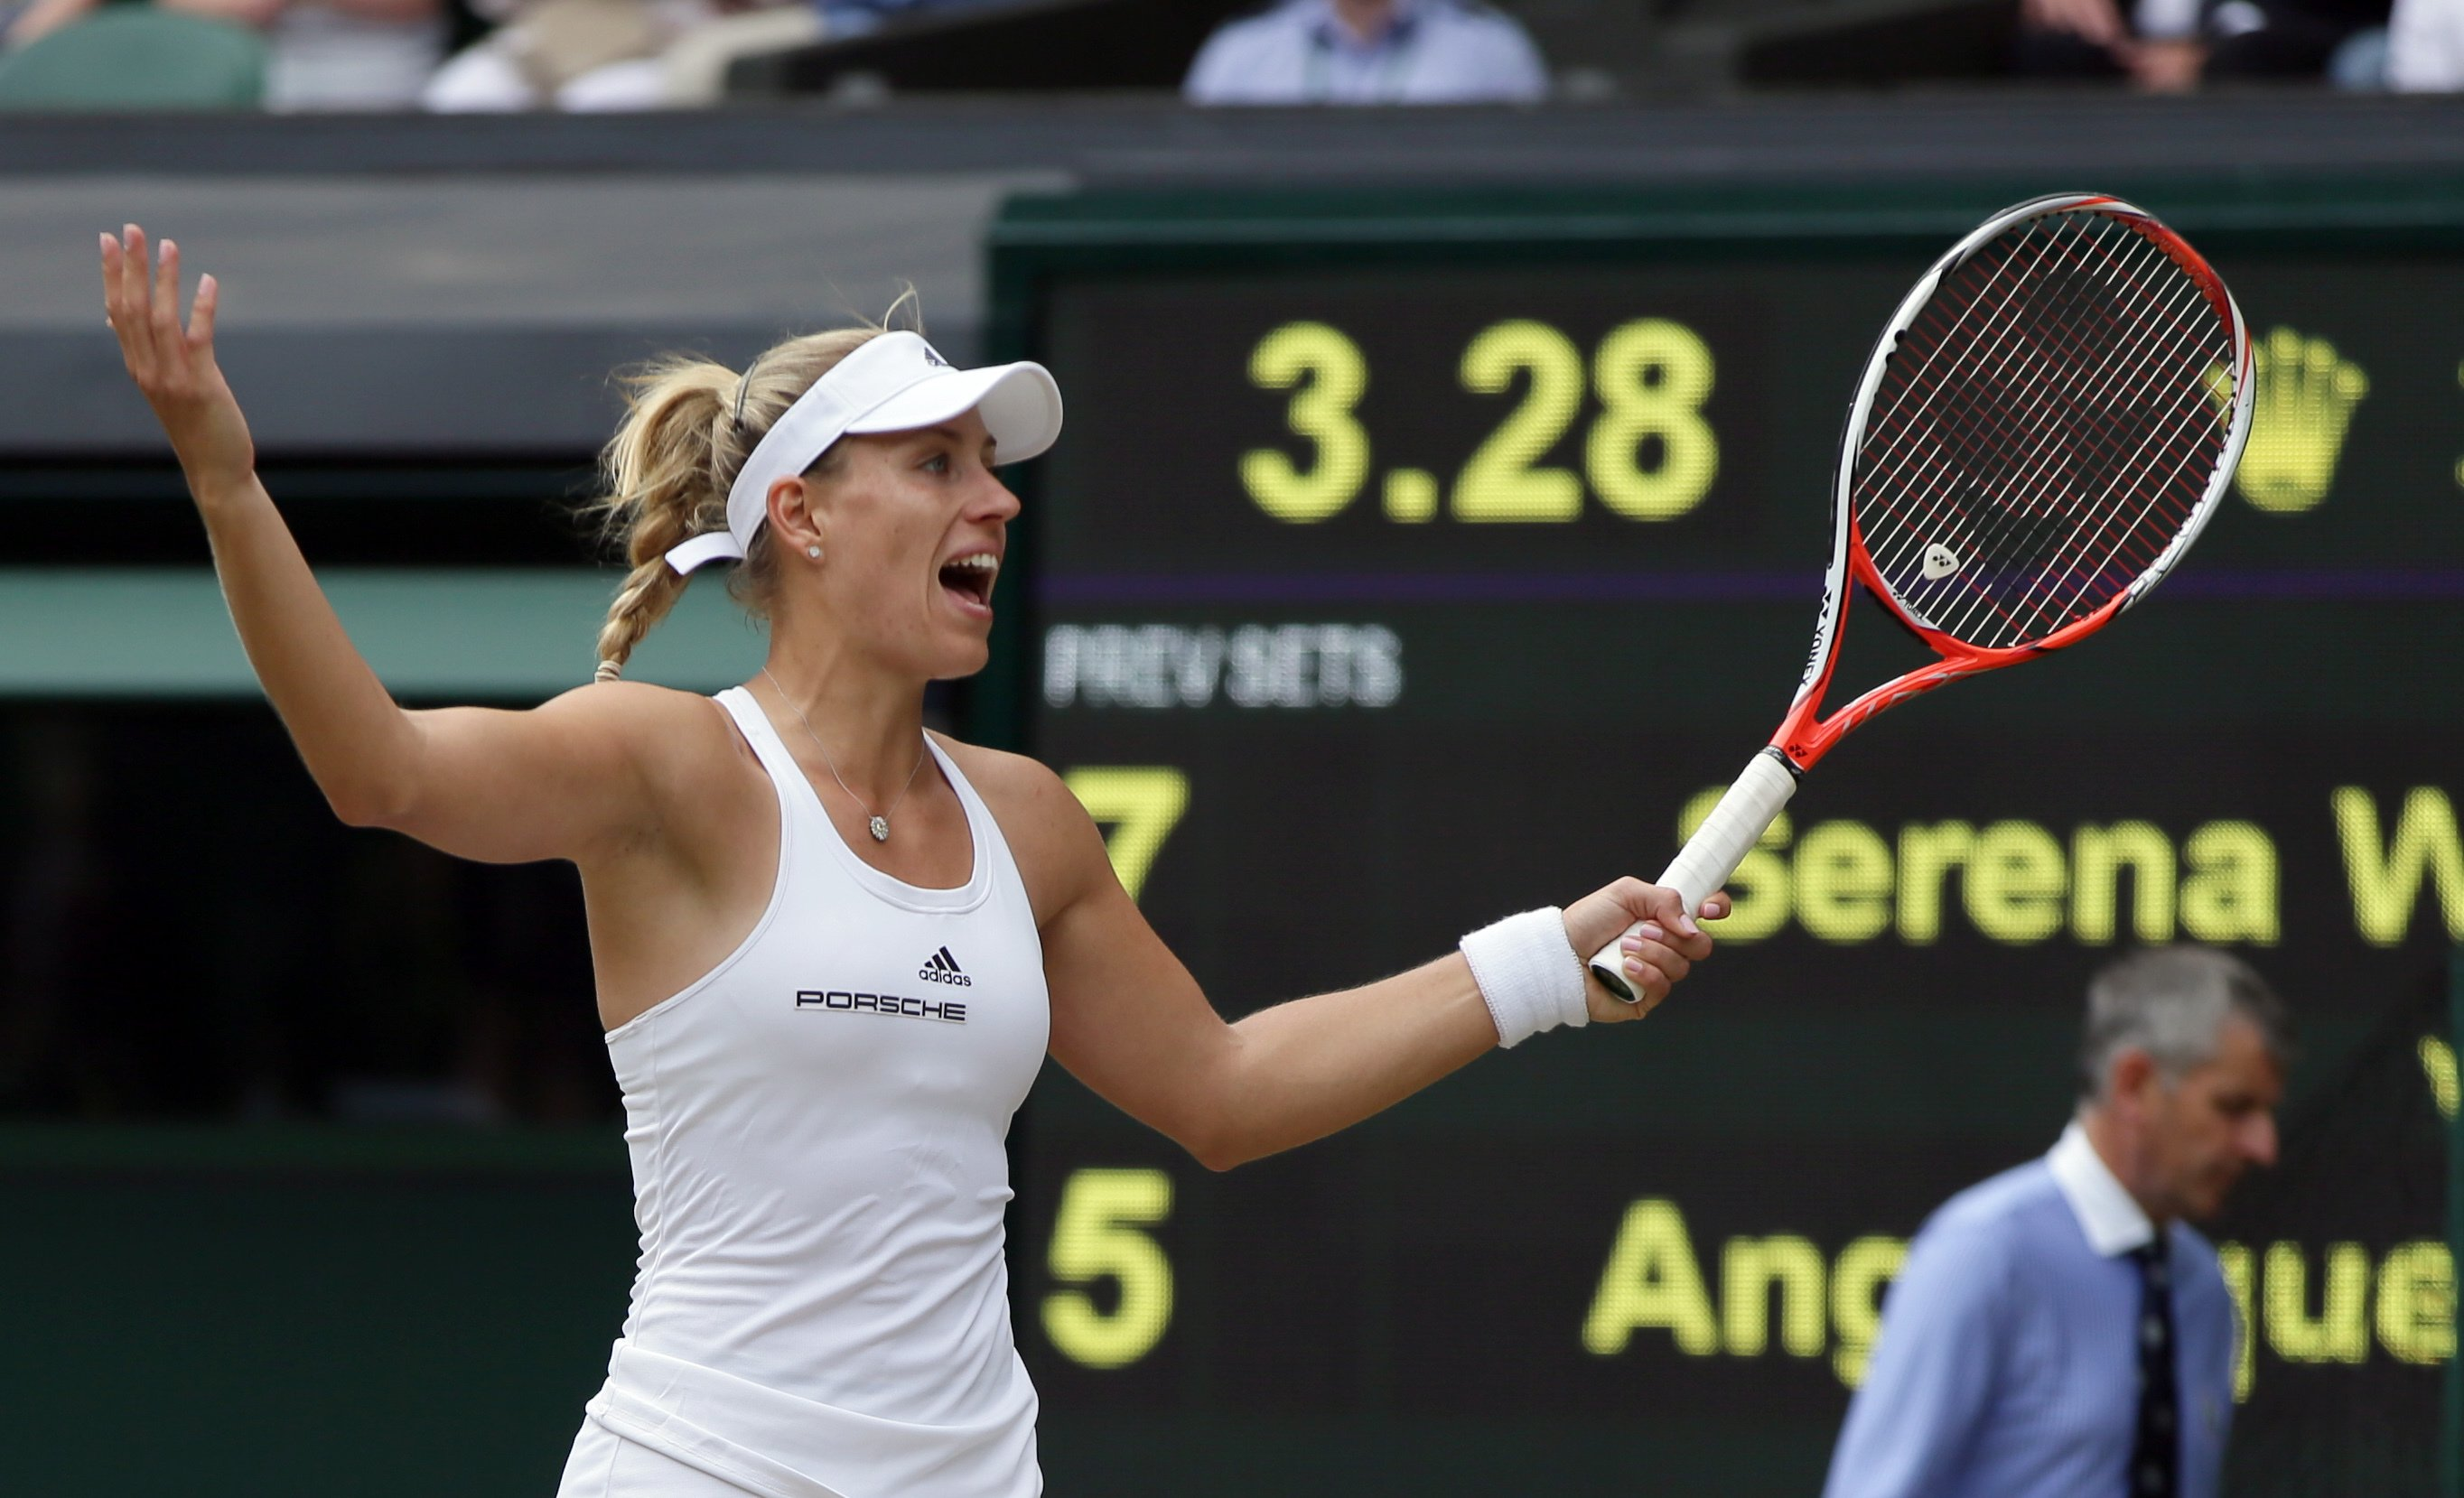 Kerber holds her own in Wimbledon final against Williams